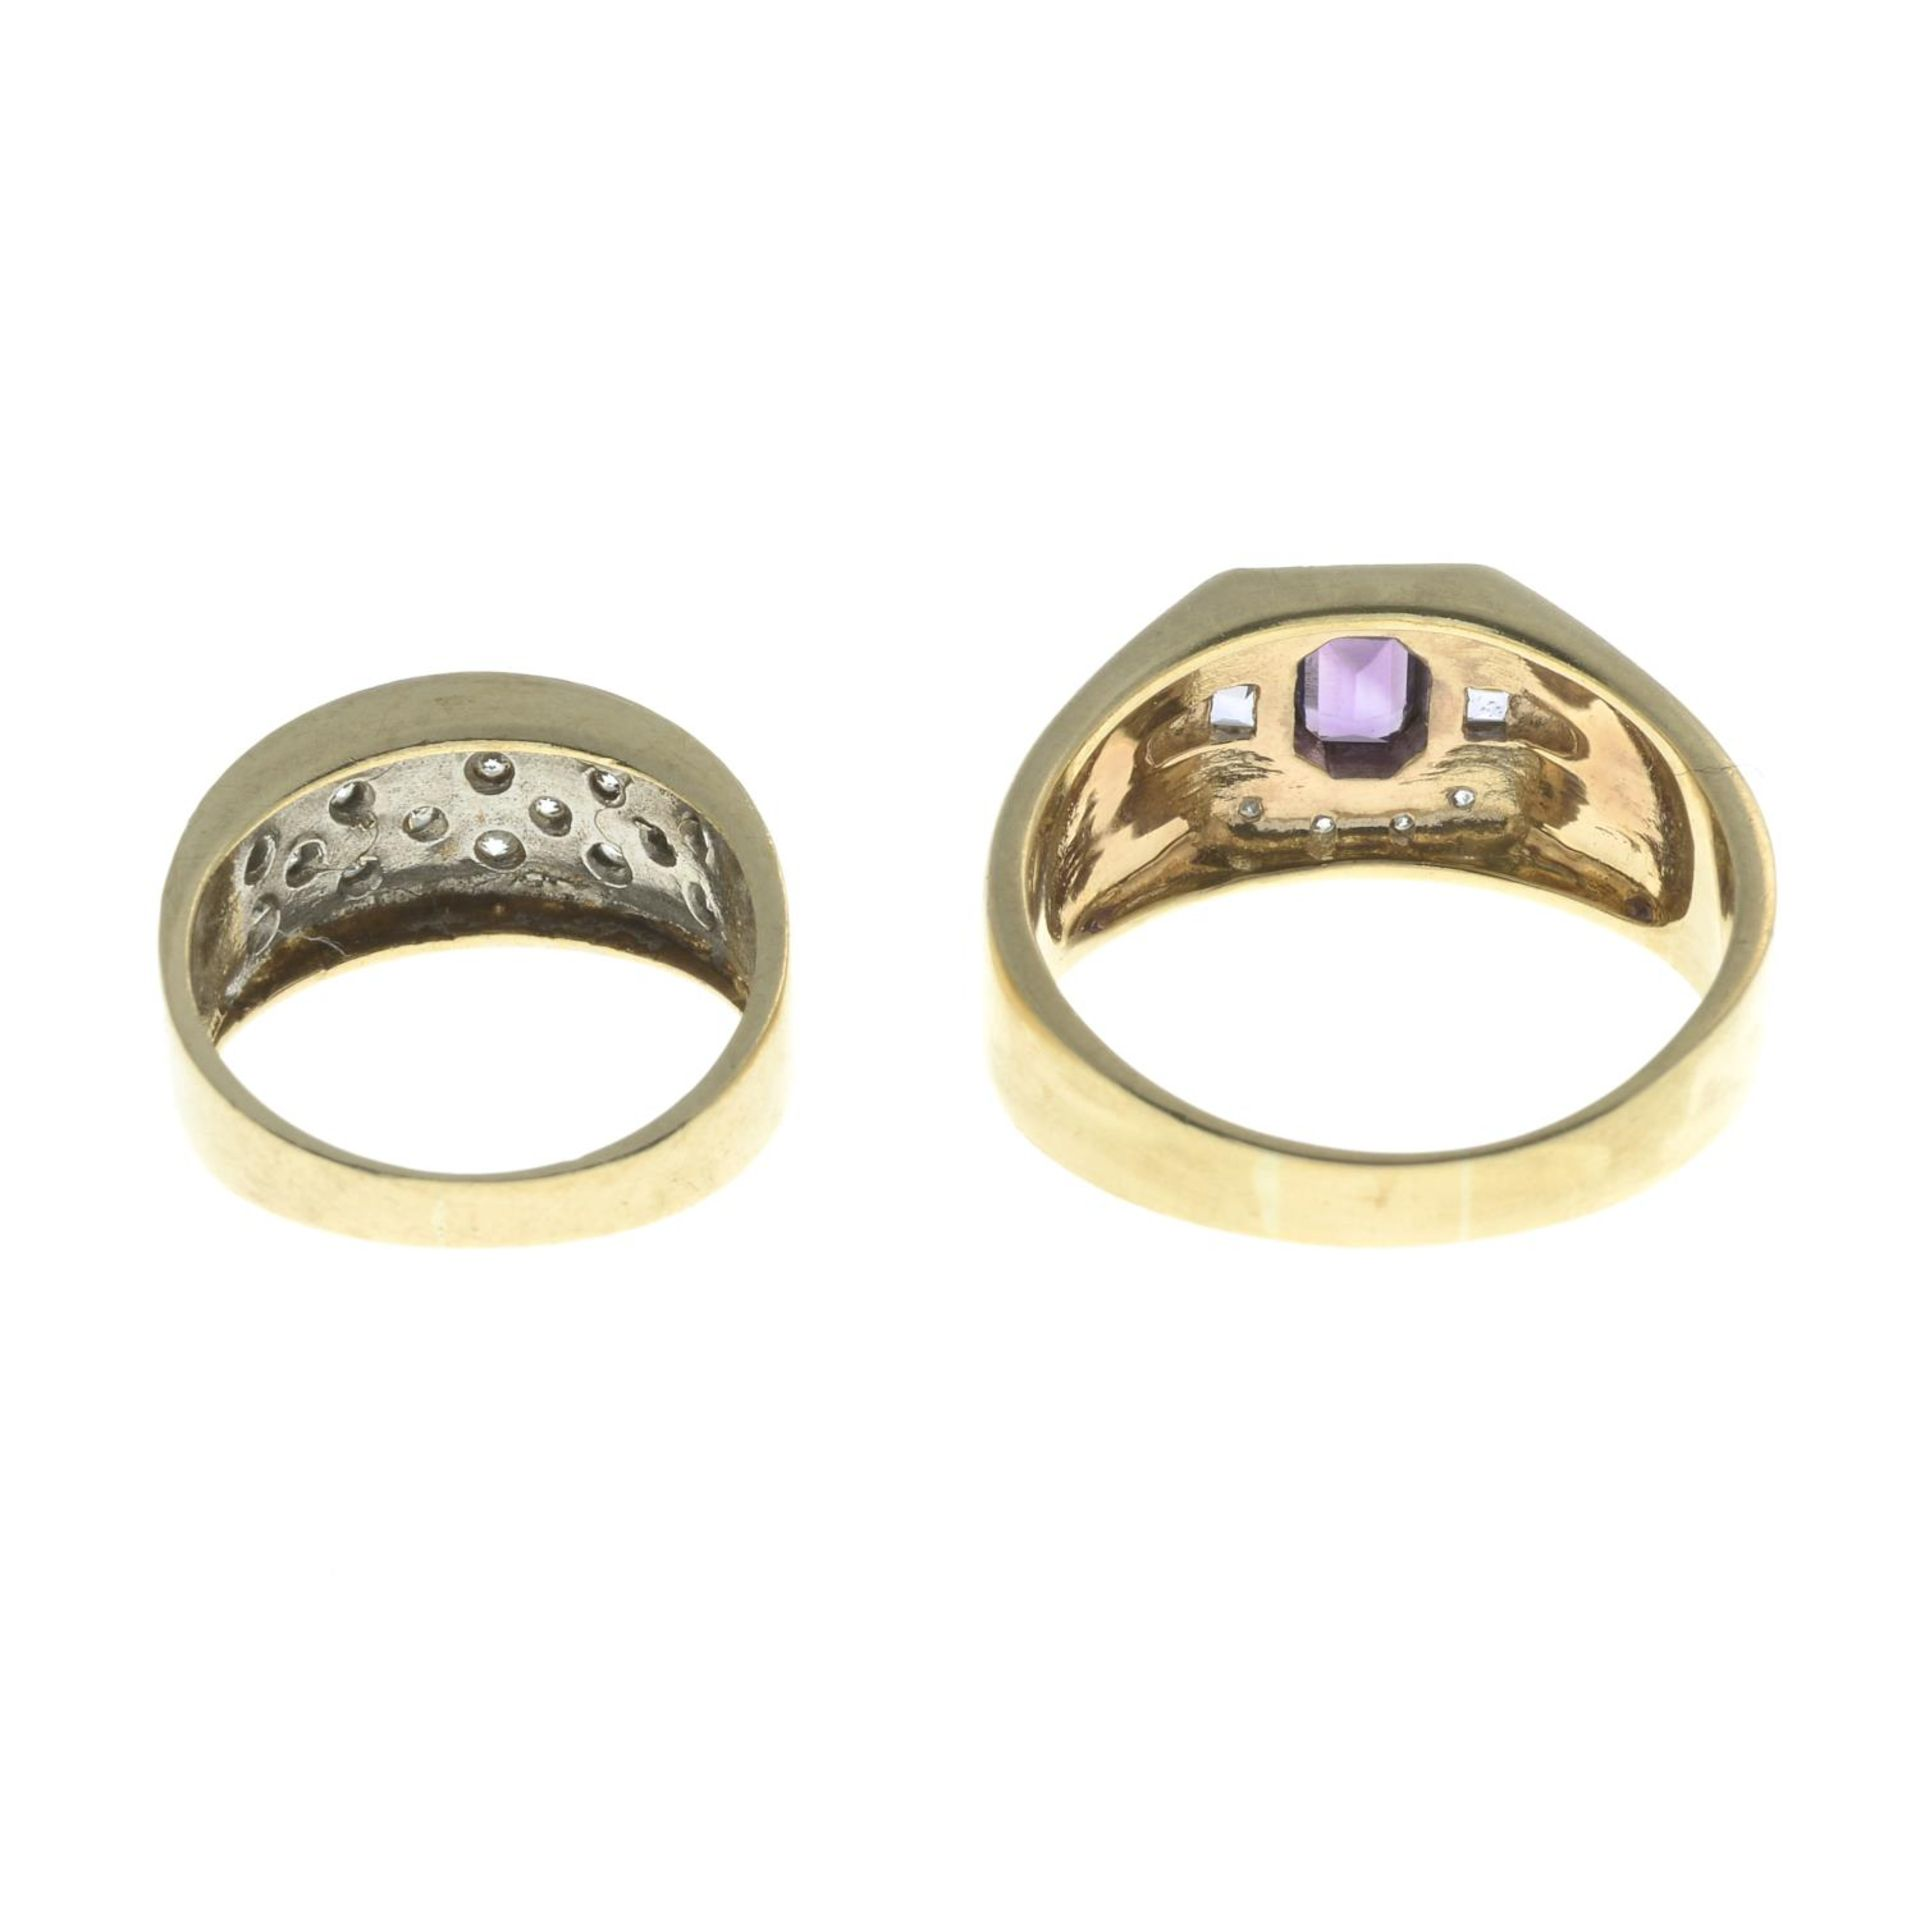 9ct gold amethyst and diamond dress ring, - Image 2 of 2